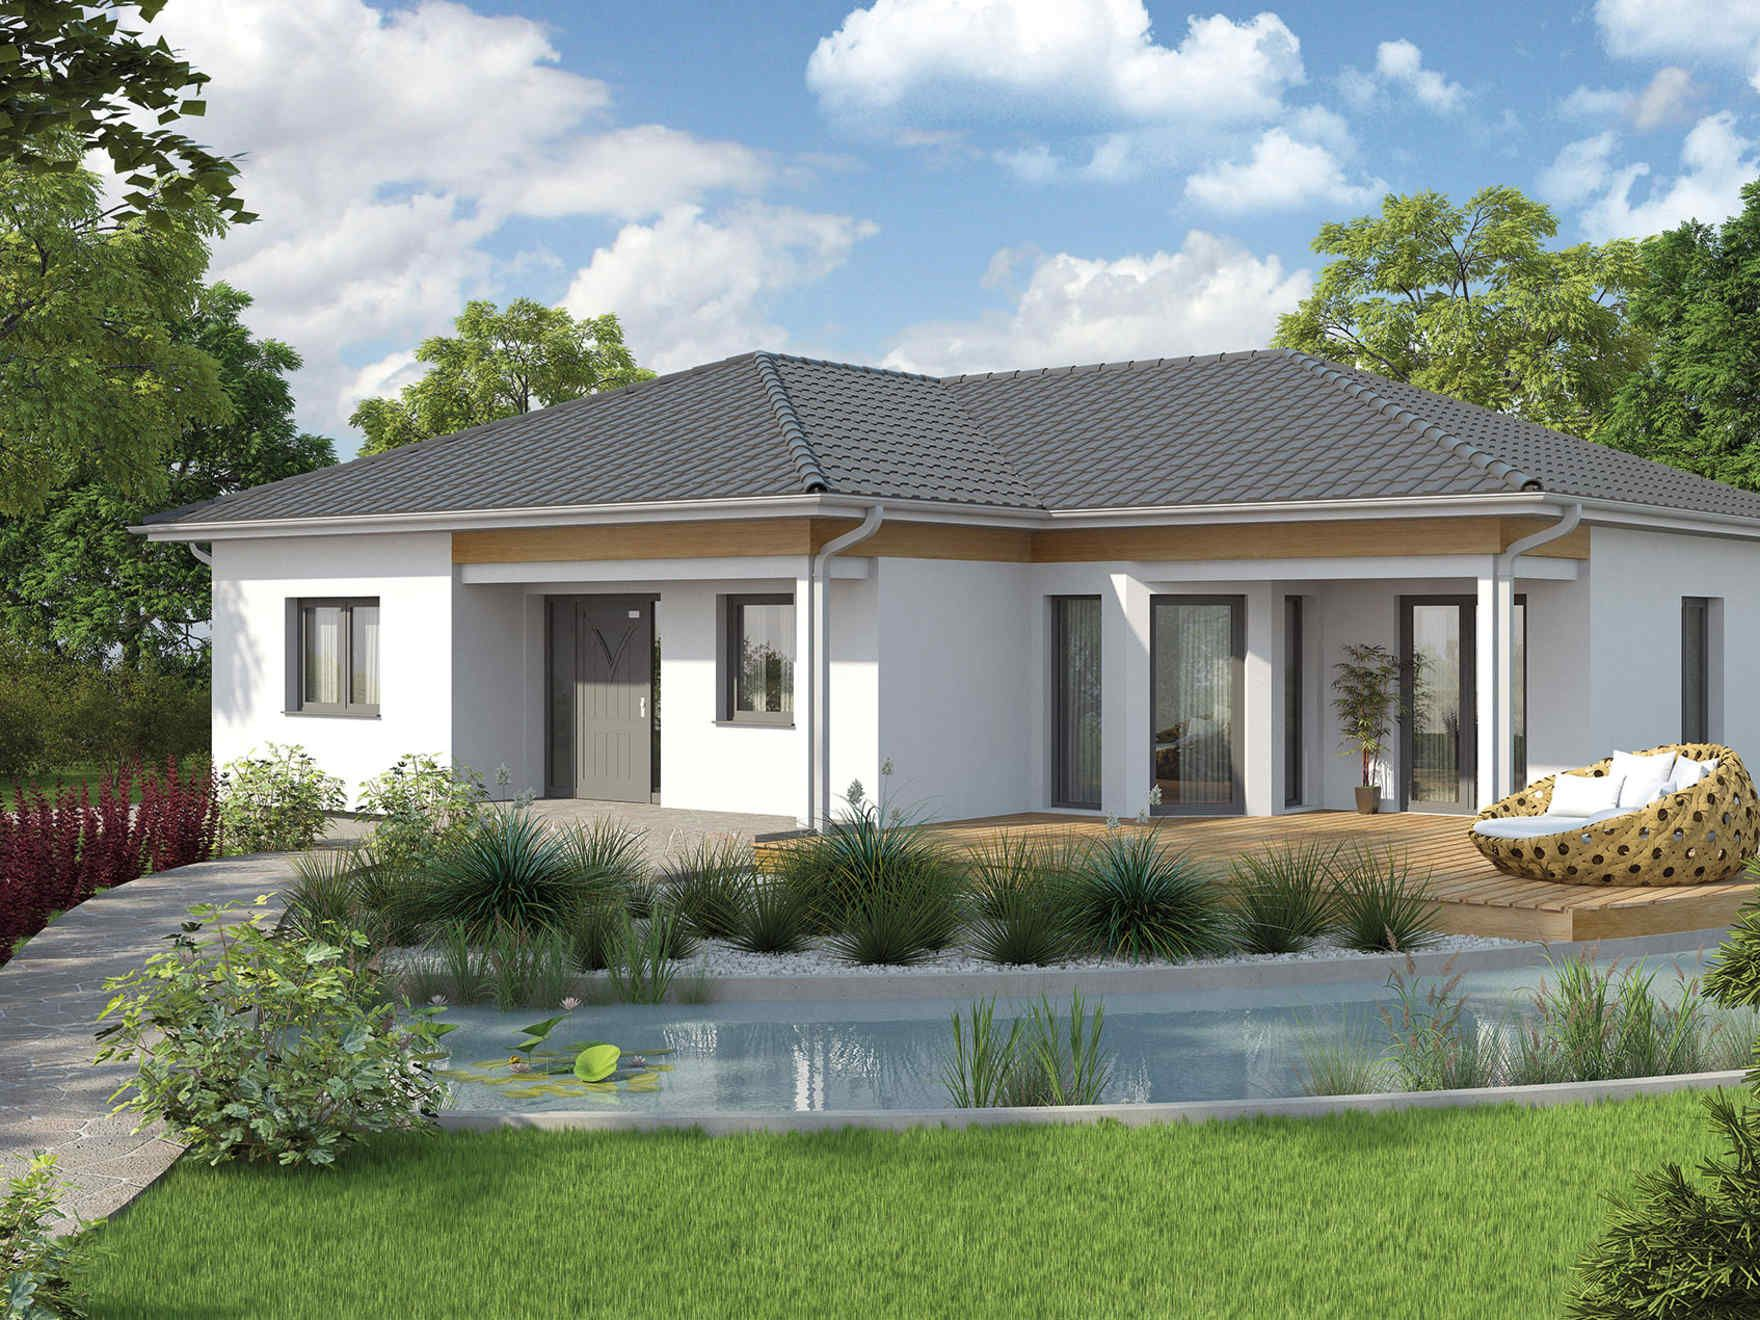 Find this pin and more on vario haus fertigteil bungalows